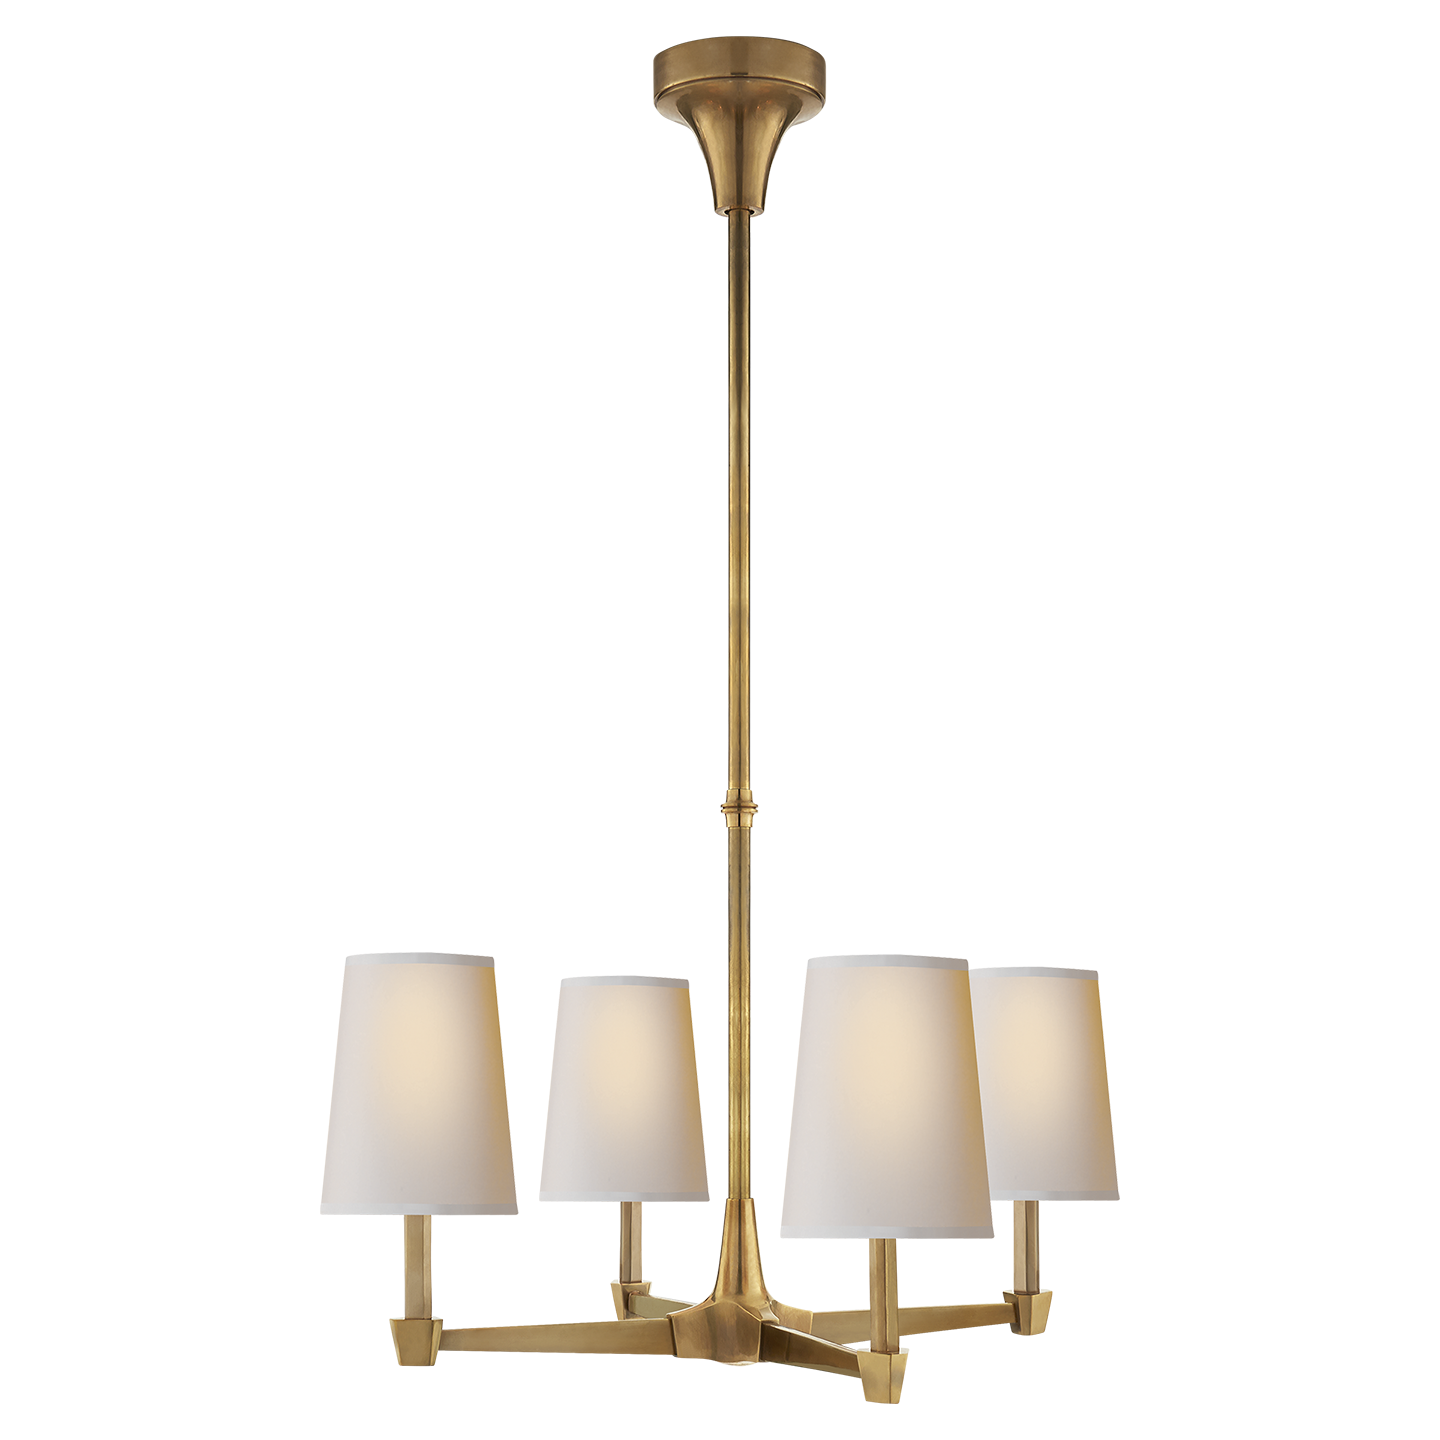 Caron Small Chandelier in Bronze and Hand-Rubbed Antique ...